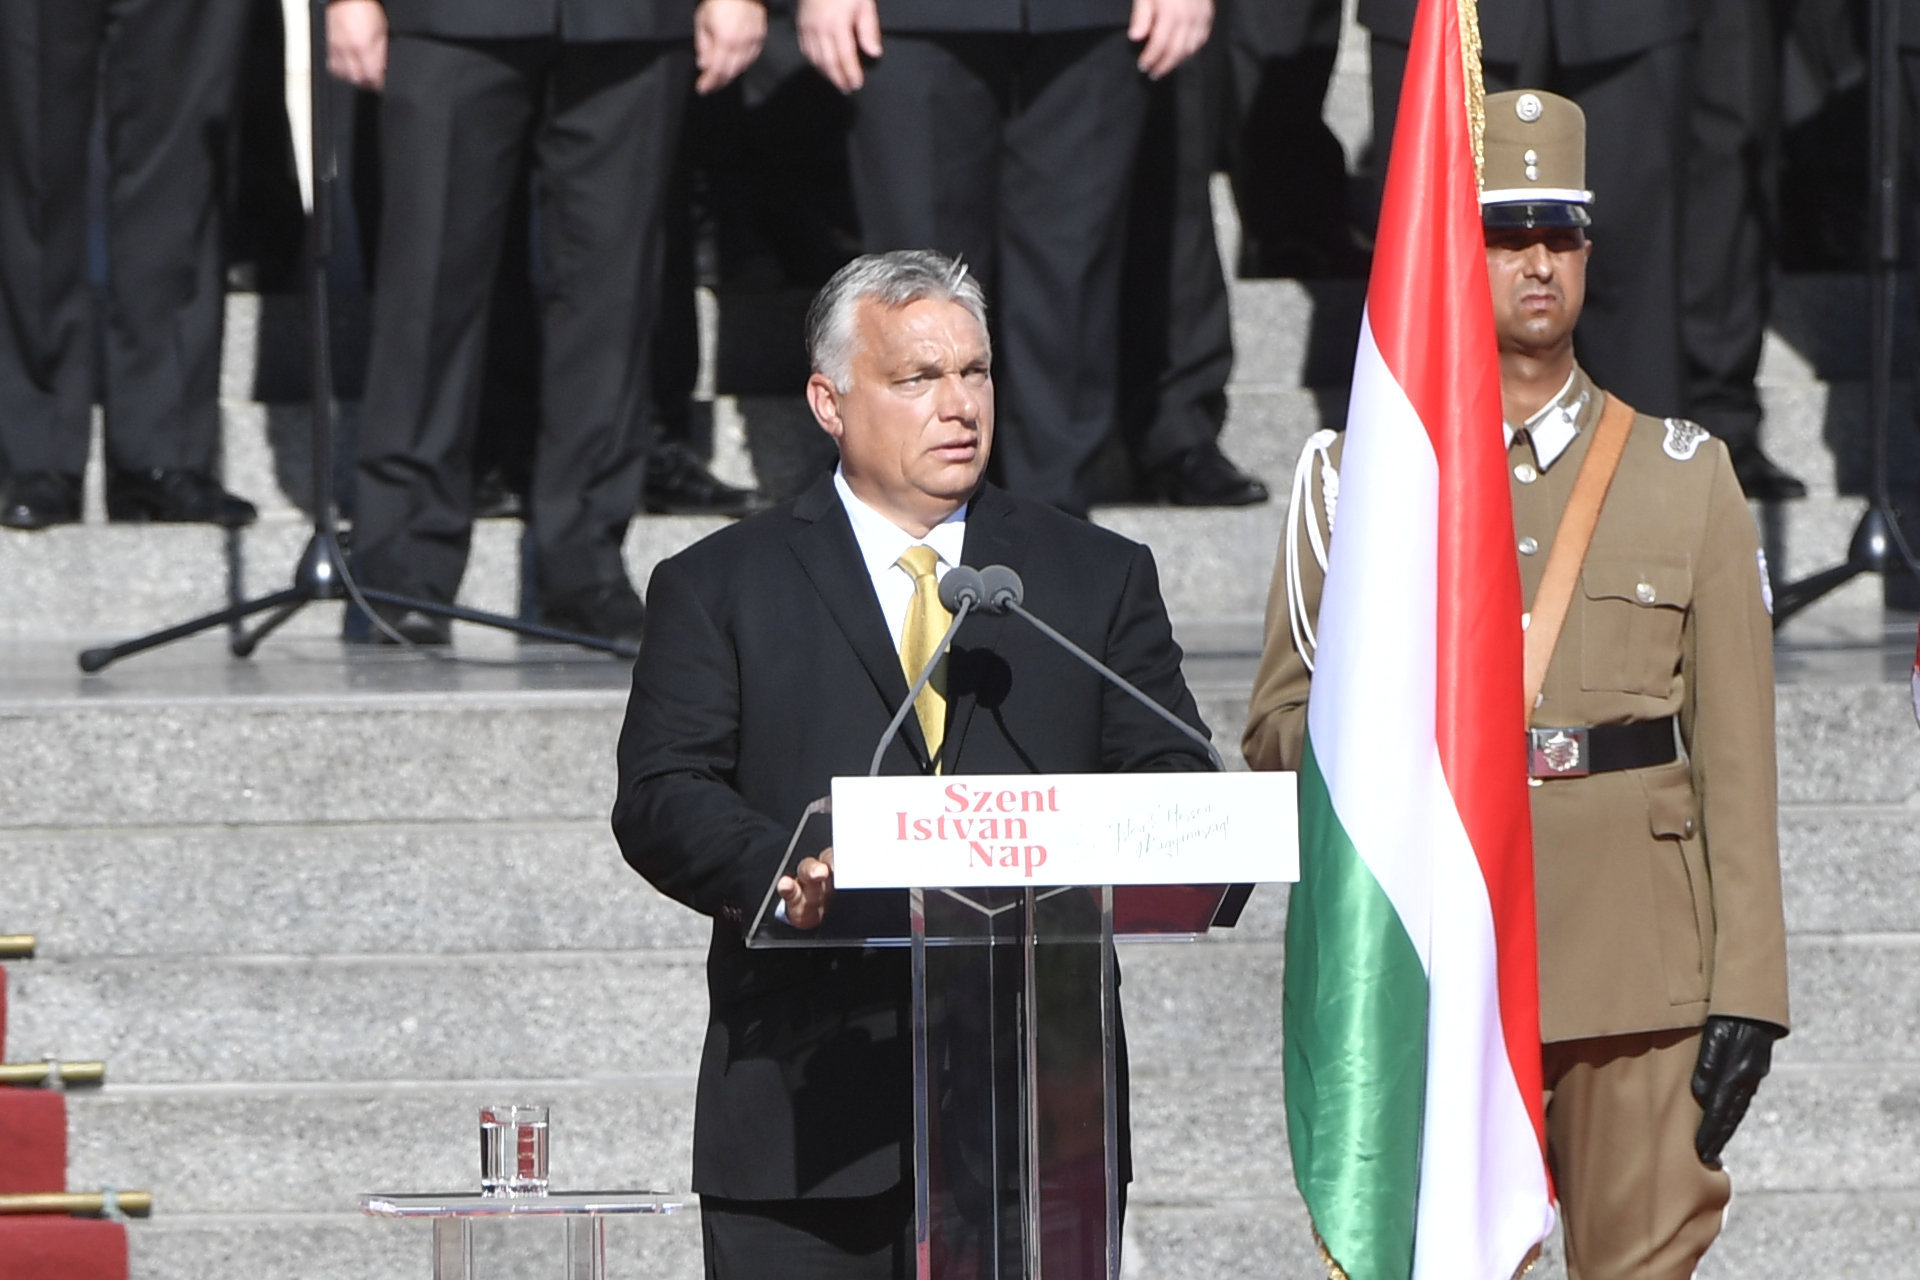 August 20 - Orbán: West 'Lost Its Appeal', Hungarians 'Champions of Survival'